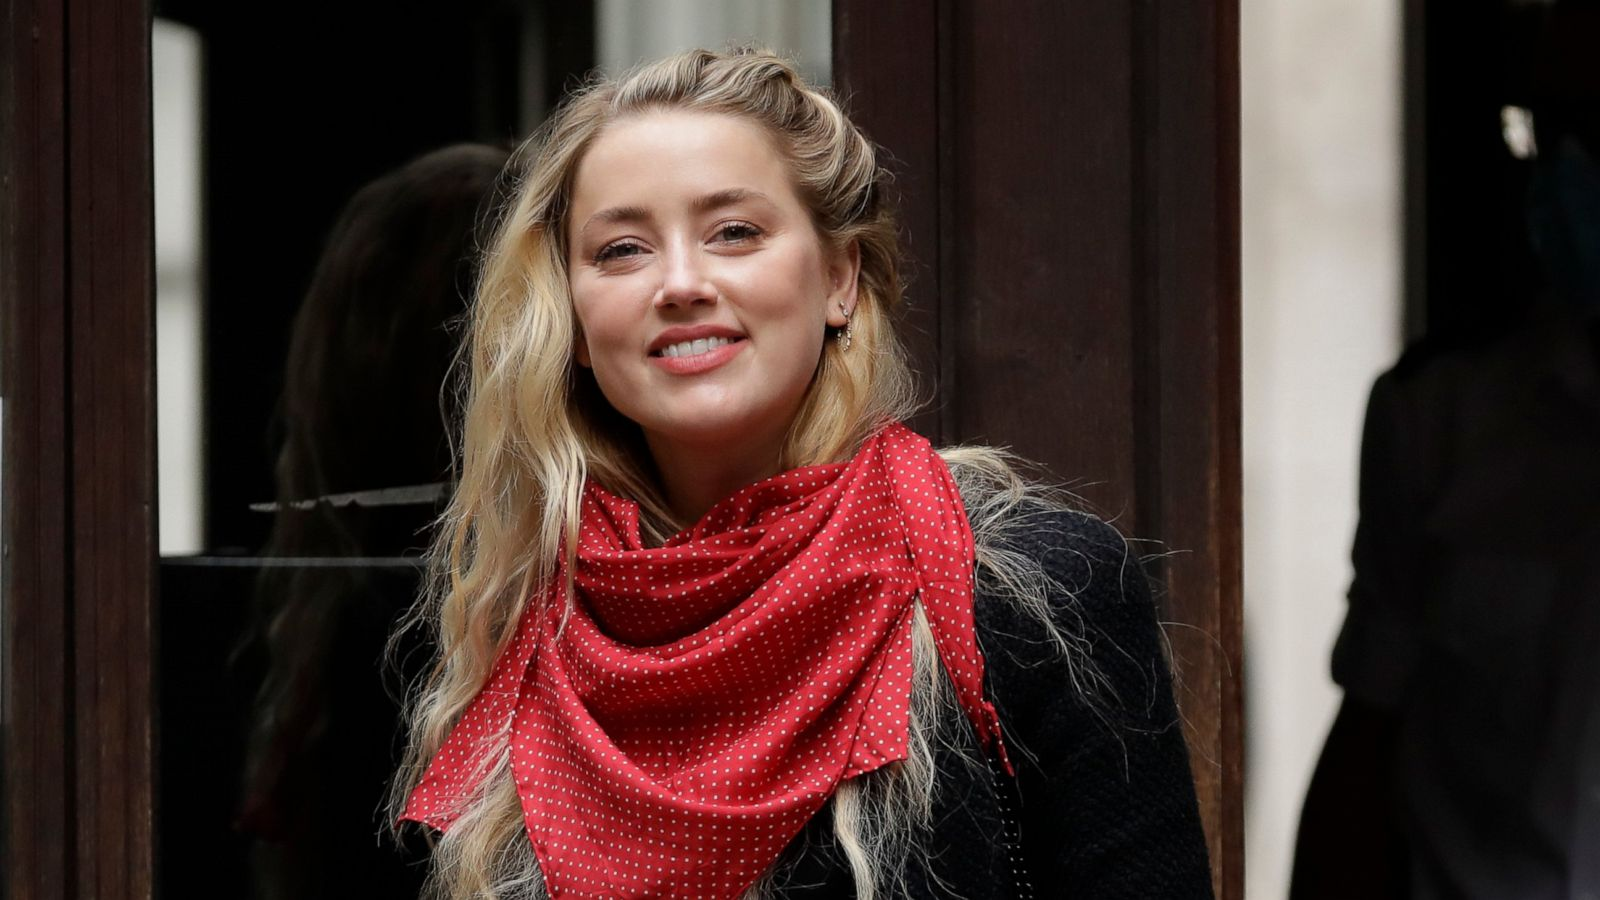 Amber Heard Wrapping Up Evidence In Johnny Depp Libel Trial Abc News